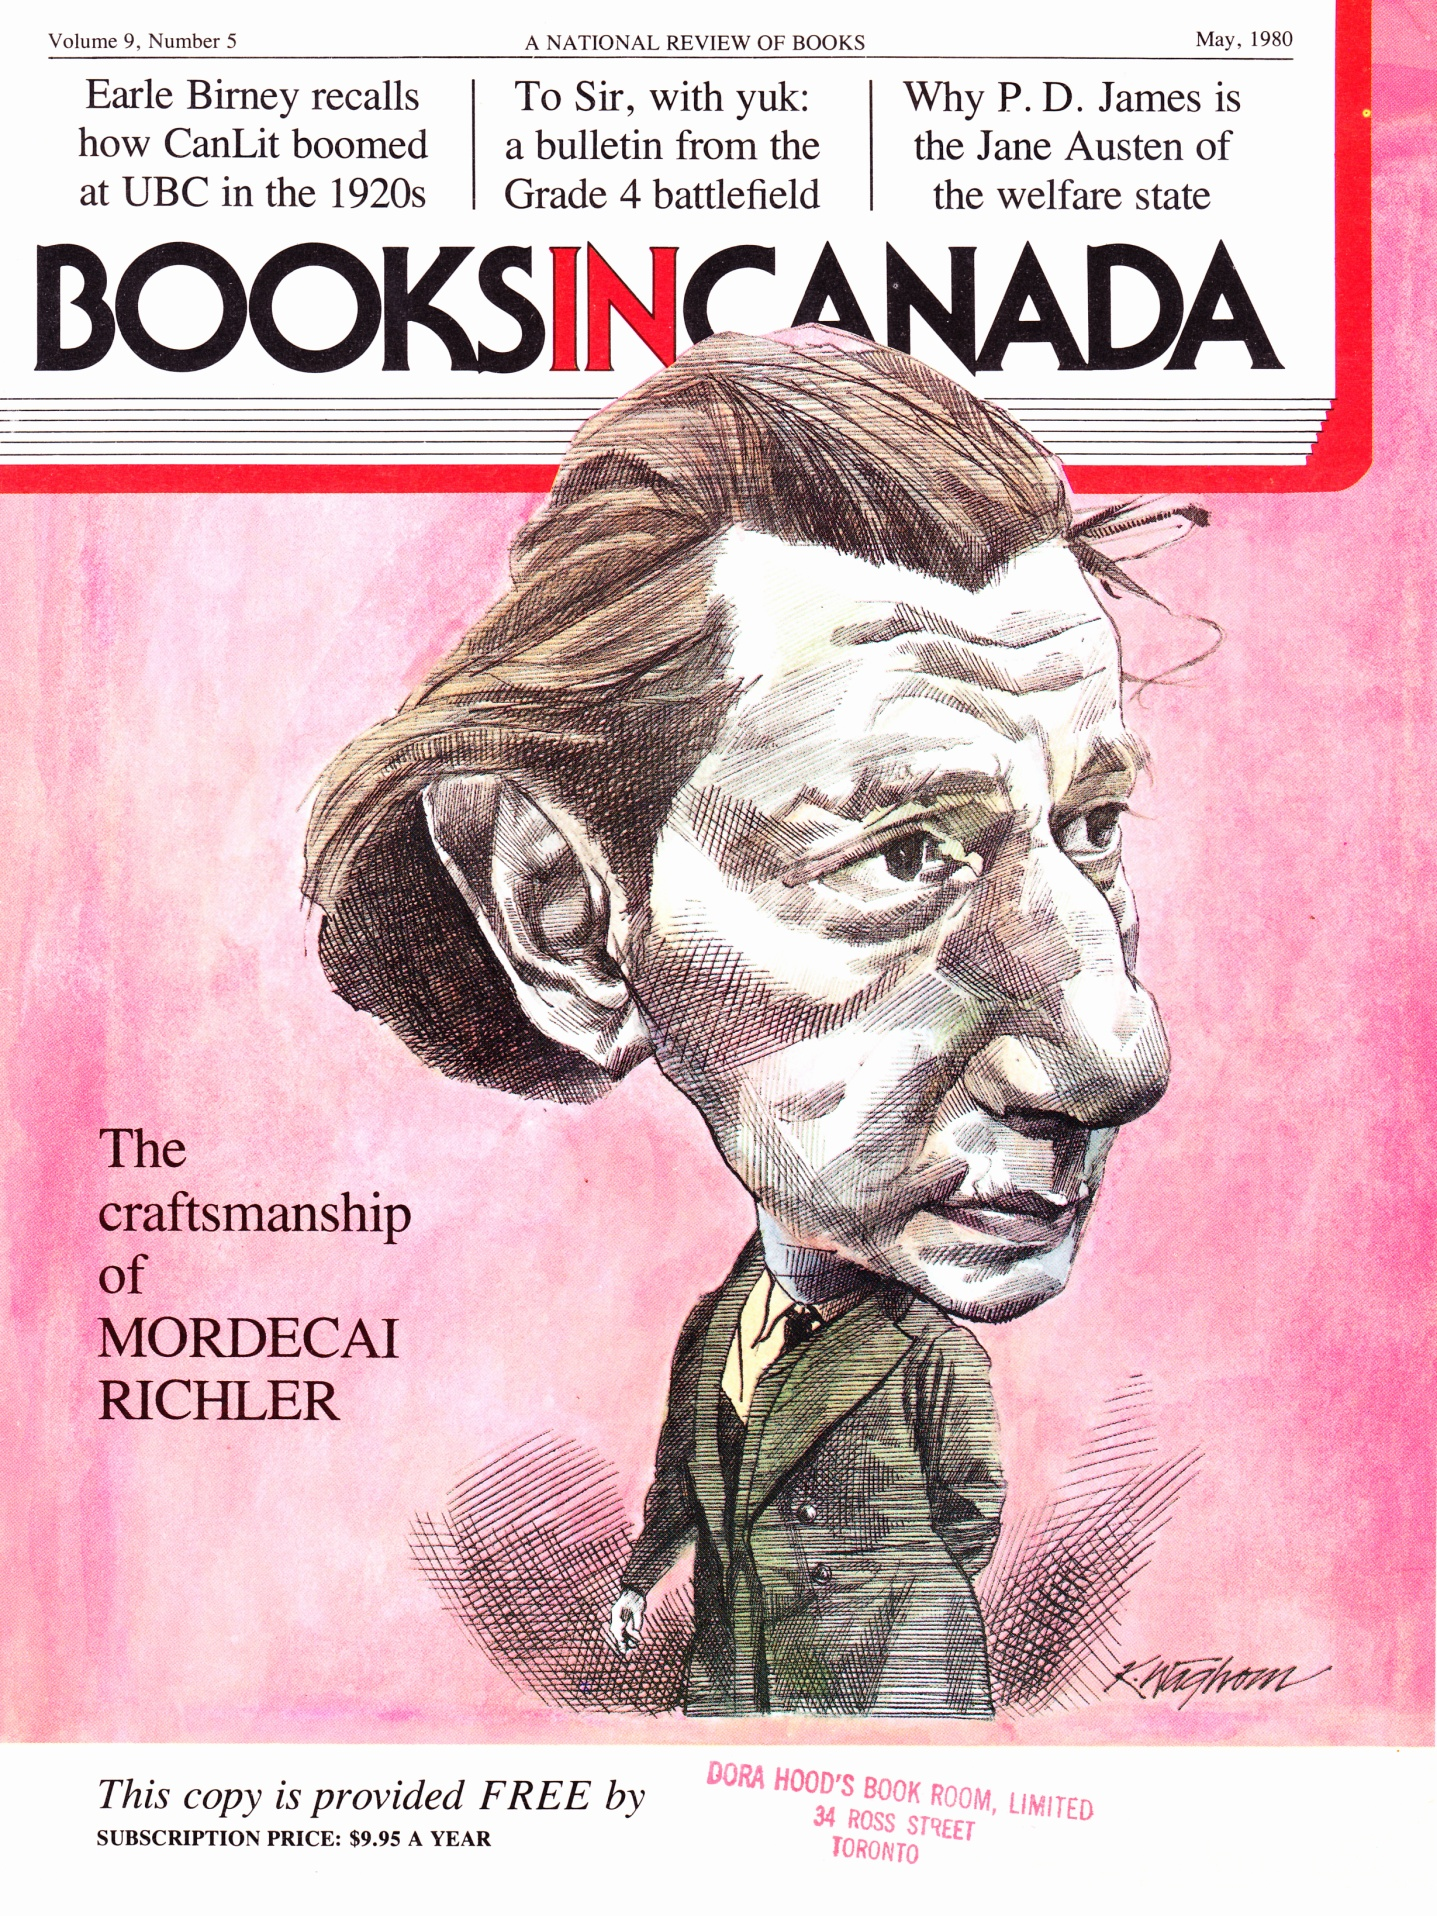 C:\Users\Robert\Documents\CARTOONING ILLUSTRATION ANIMATION\IMAGE BY CARTOONIST\W\WAGHORN Kerry, Books in Canada fc..jpg